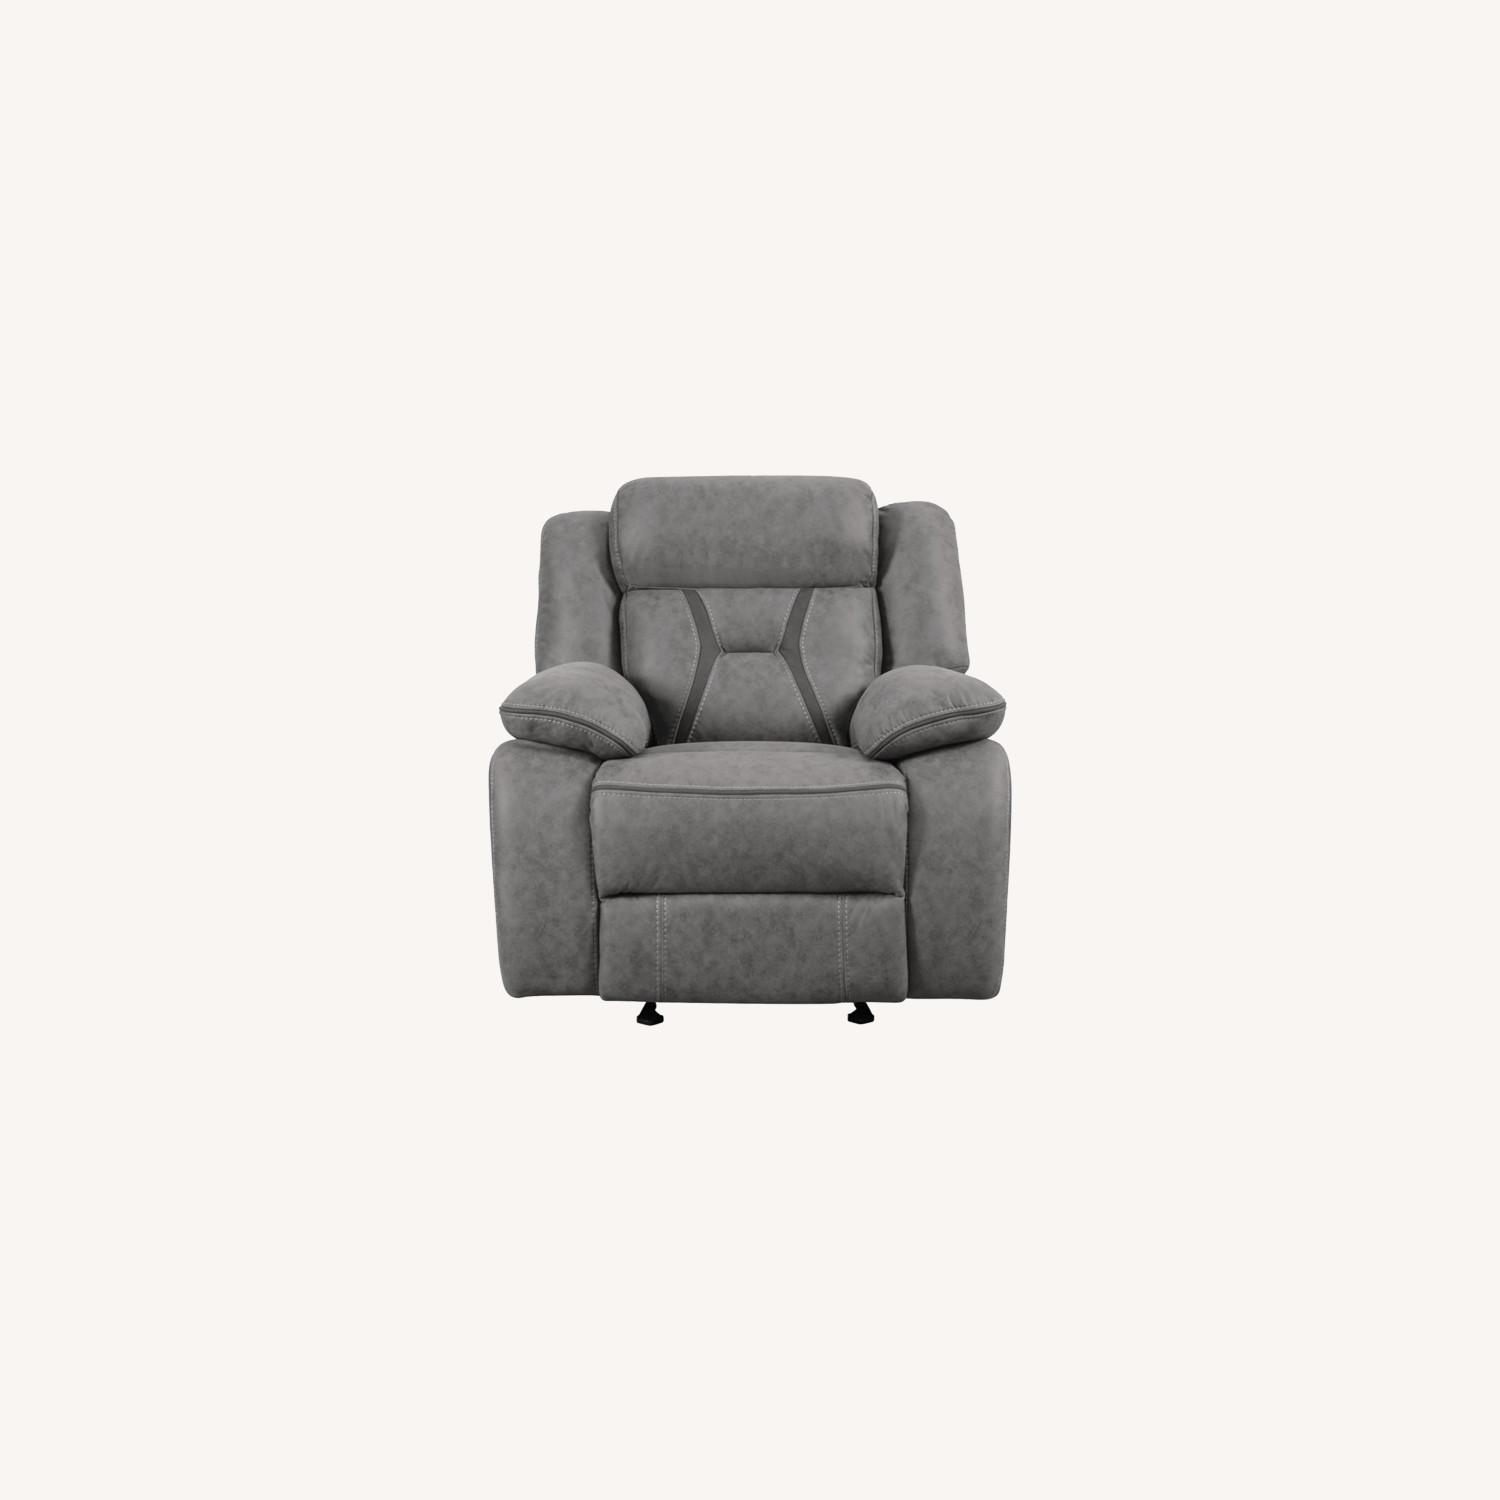 Glider Recliner Chair In Grey Suede Fabric - image-6